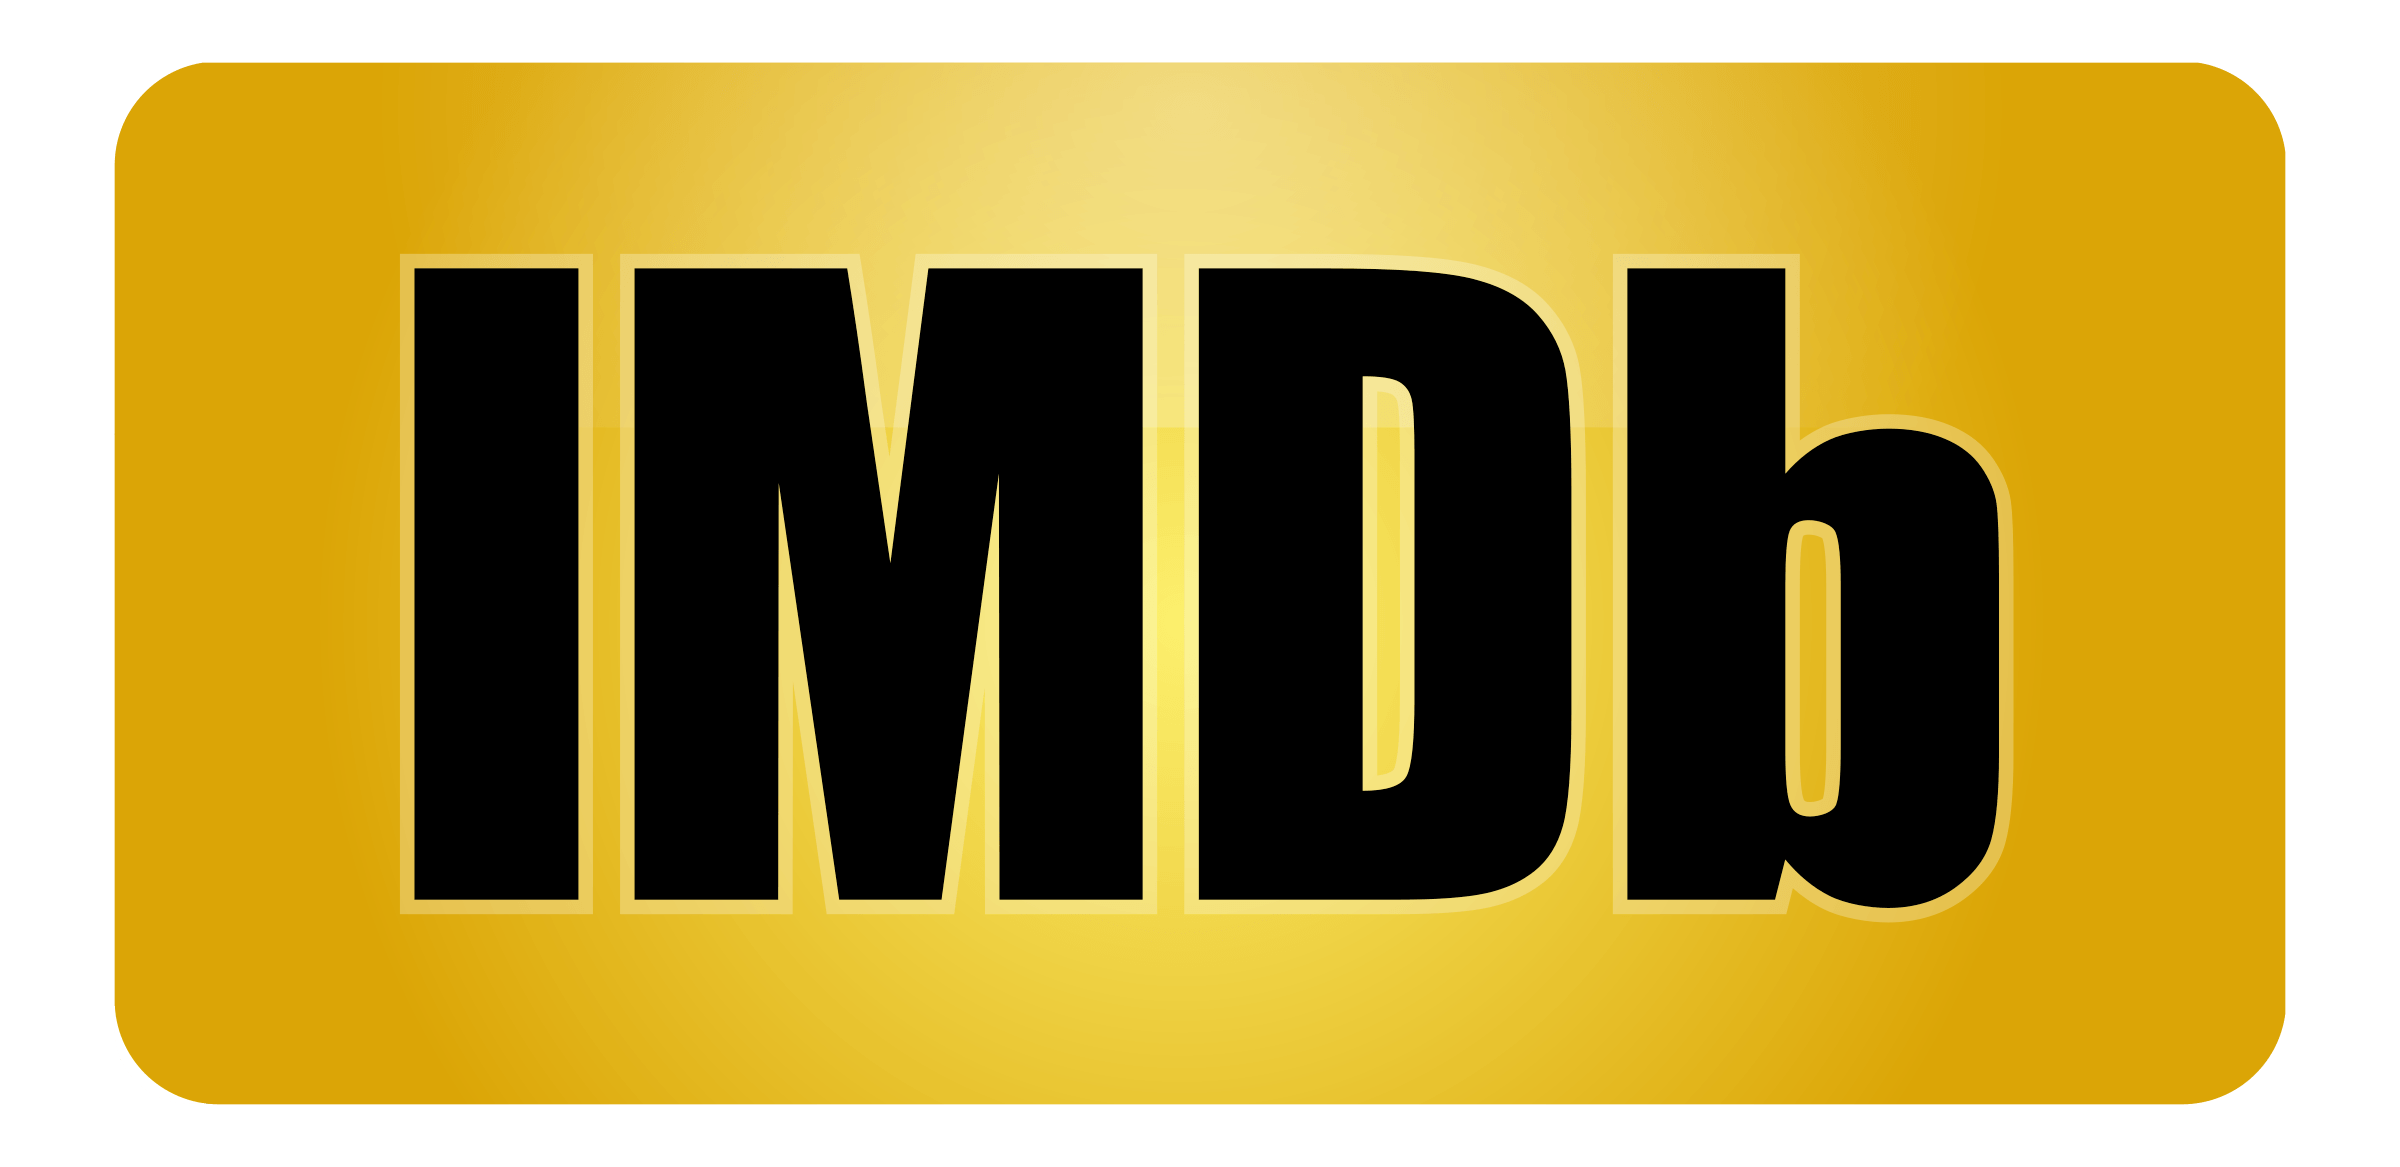 IMDb Logo PNG Transparent & SVG Vector - Freebie Supply